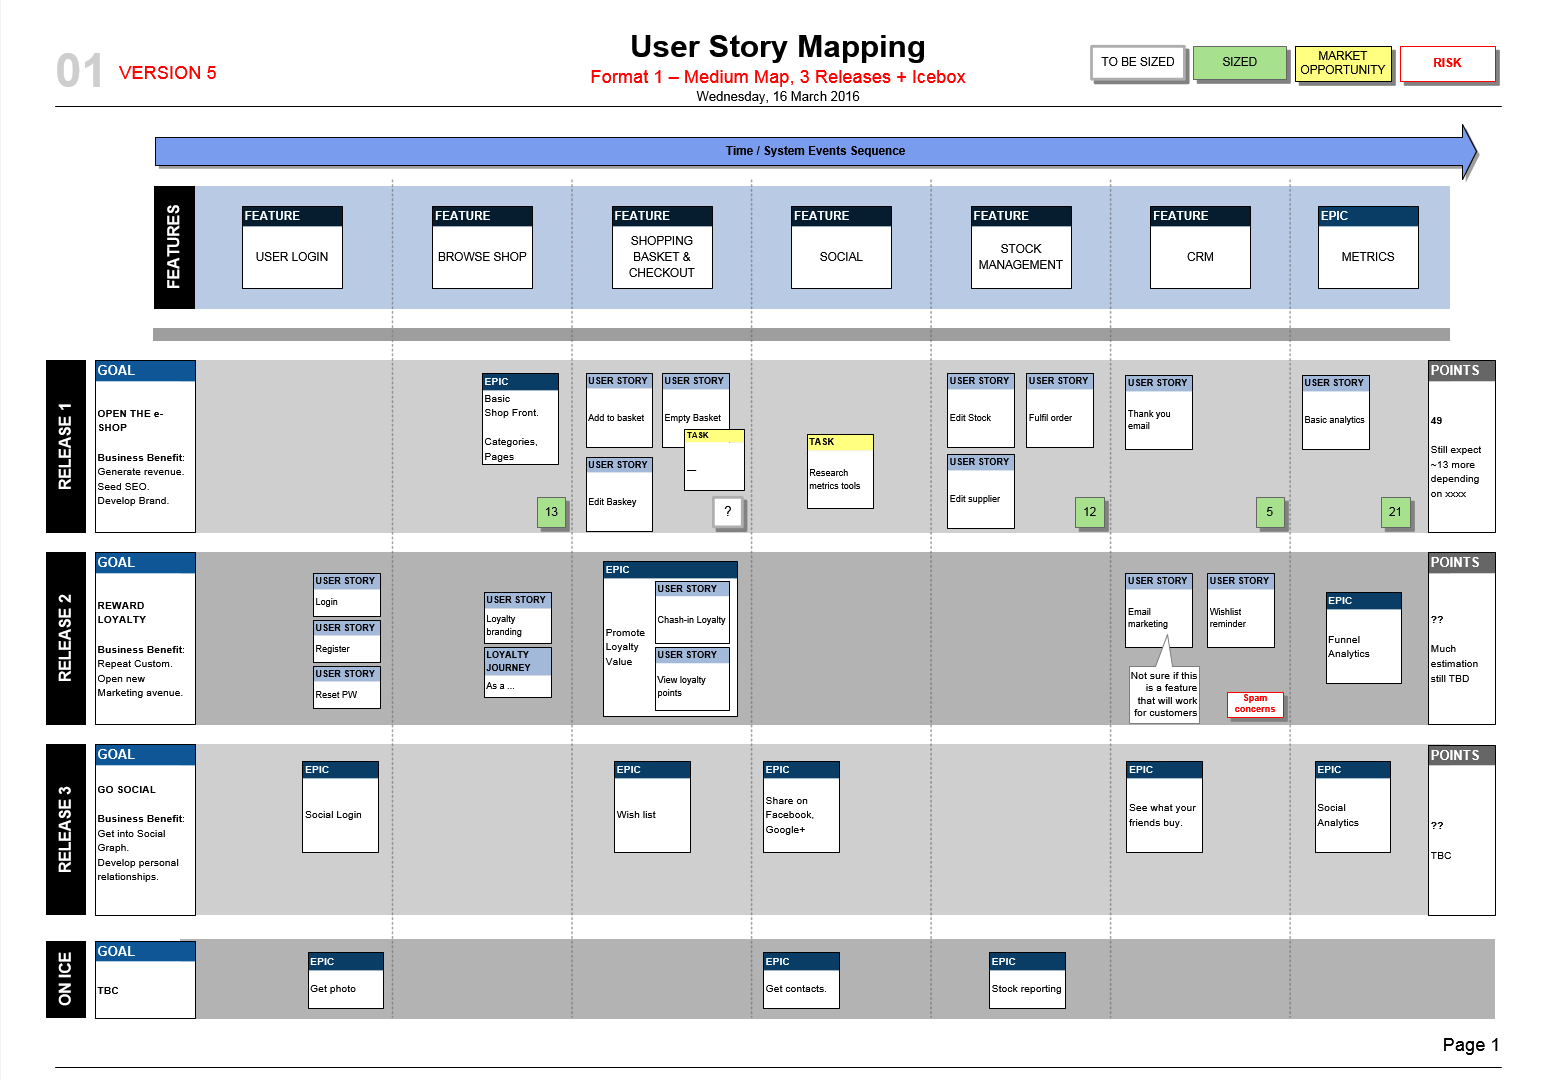 scrum release plan template - how to make a slick user story map a simple visio